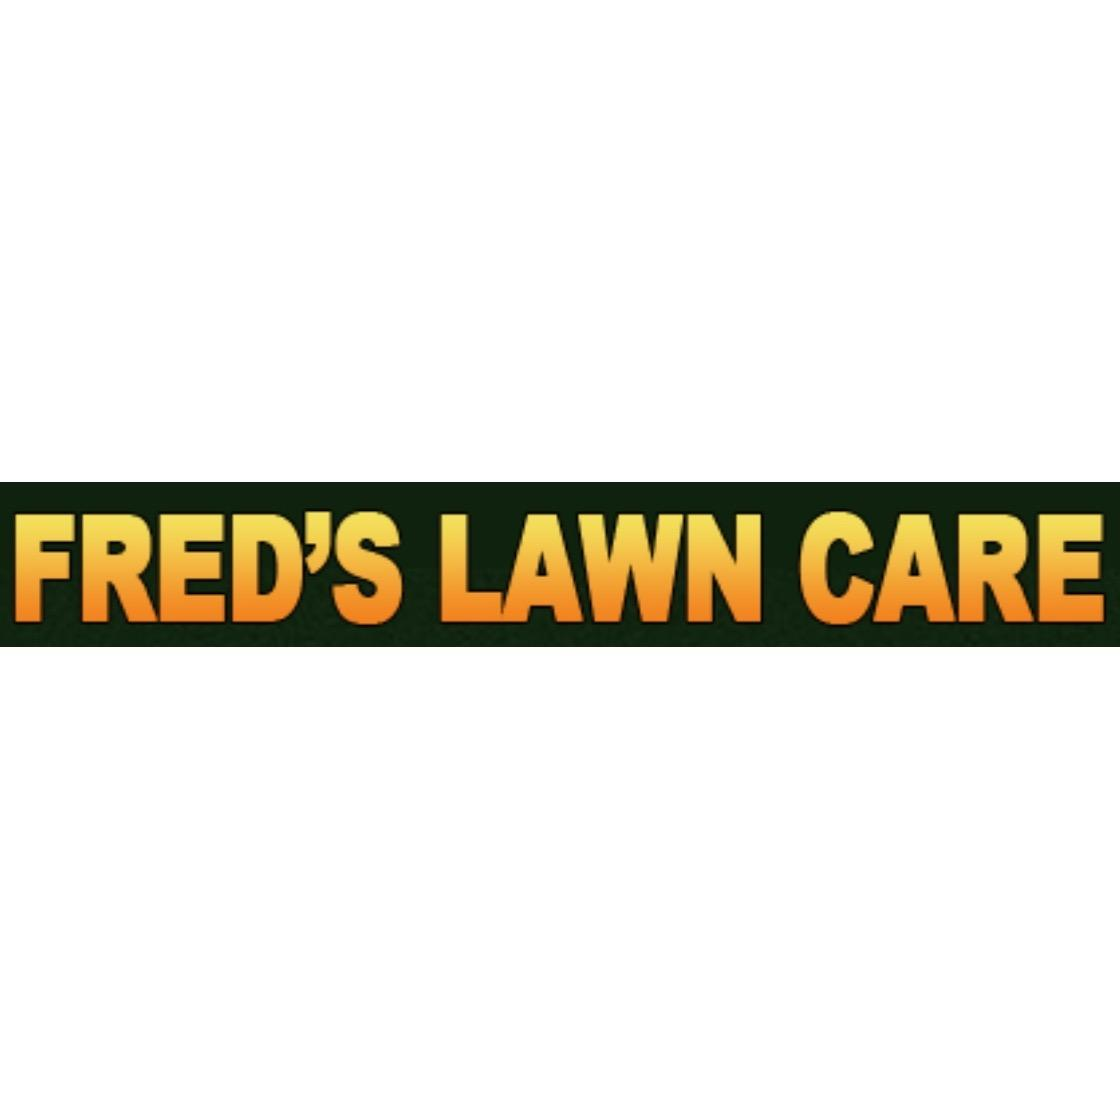 Fred's Lawn Care